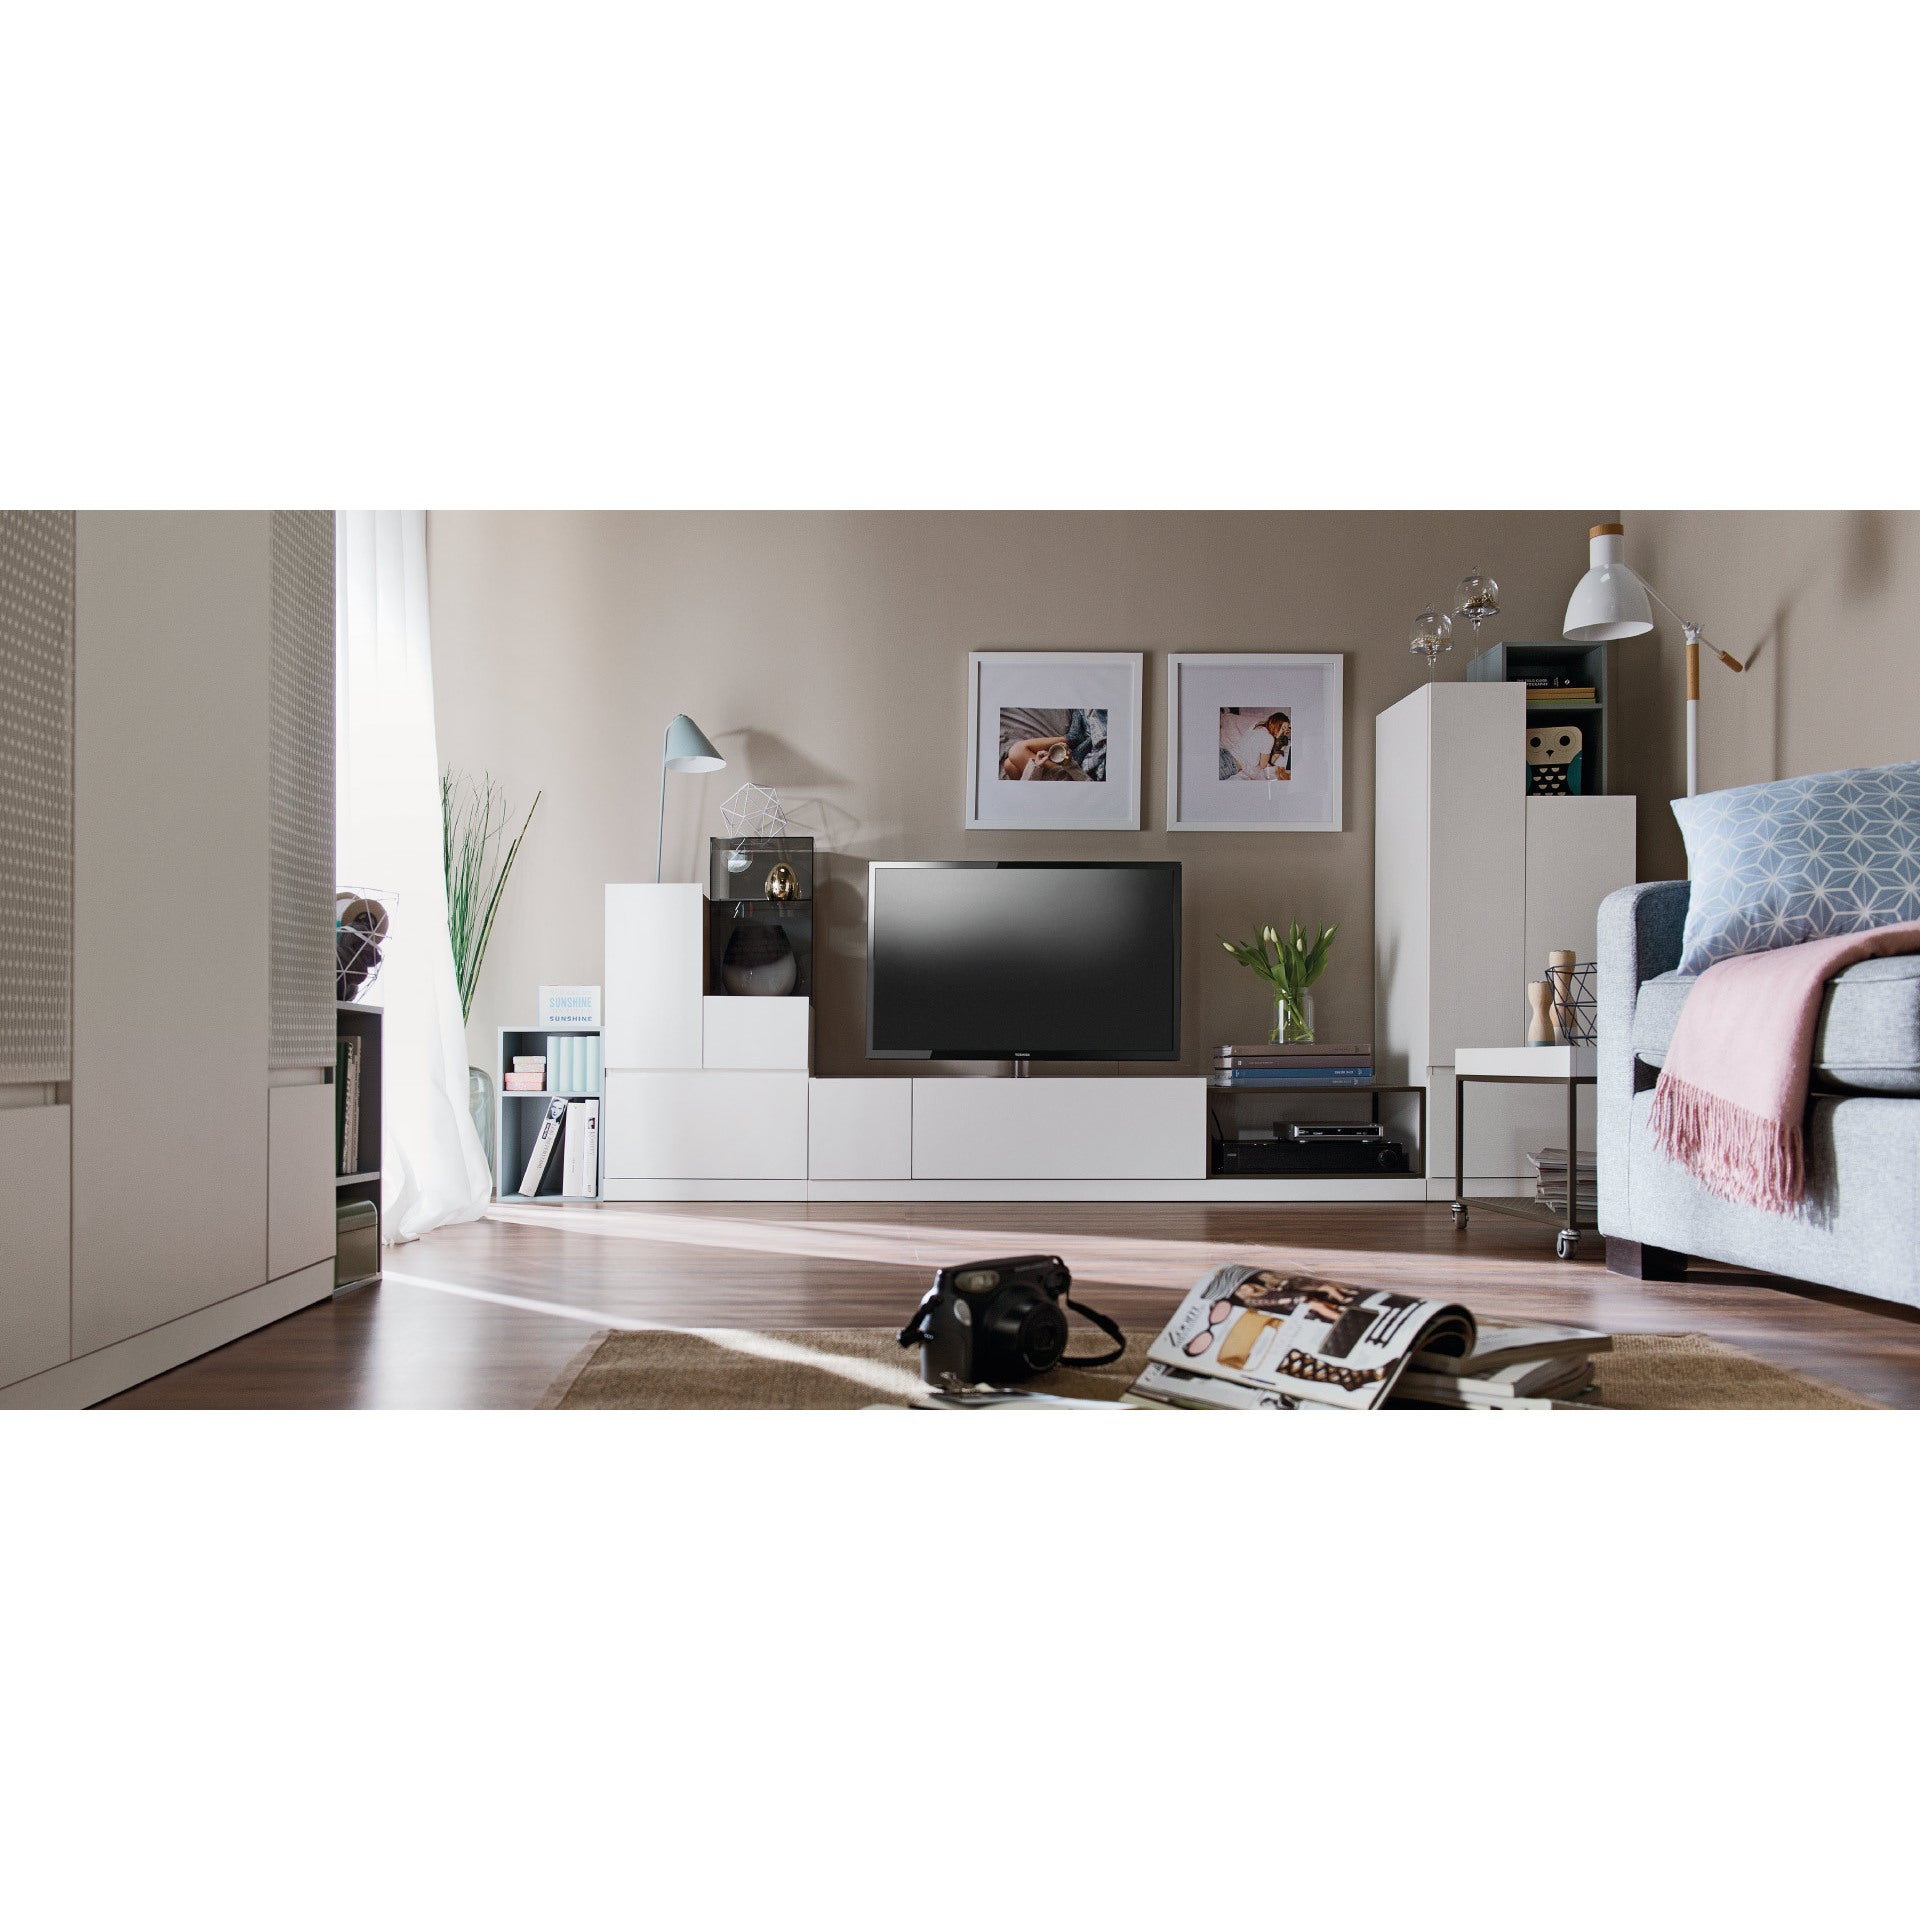 Good Voelkel Muto Collection Wooden Low L Shaped Storage Cabinet   Free Shipping  Today   Overstock.com   20089321